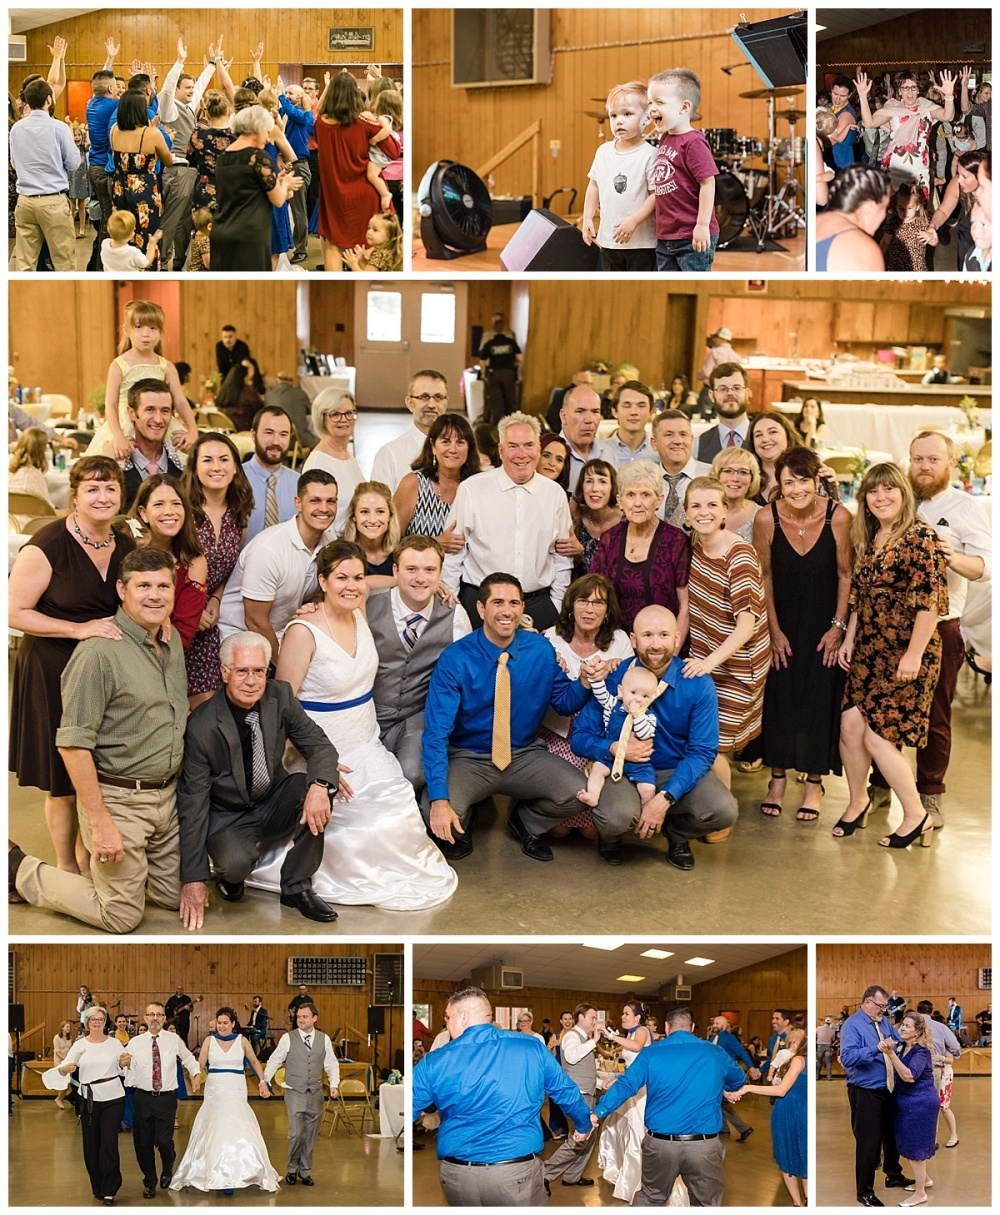 Texas-Wedding-Photographer-La-Coste-Our-Lady-Of-Grace-Church-Bride-Groom-Lego-Theme-Carly-Barton-Photography_0101.jpg